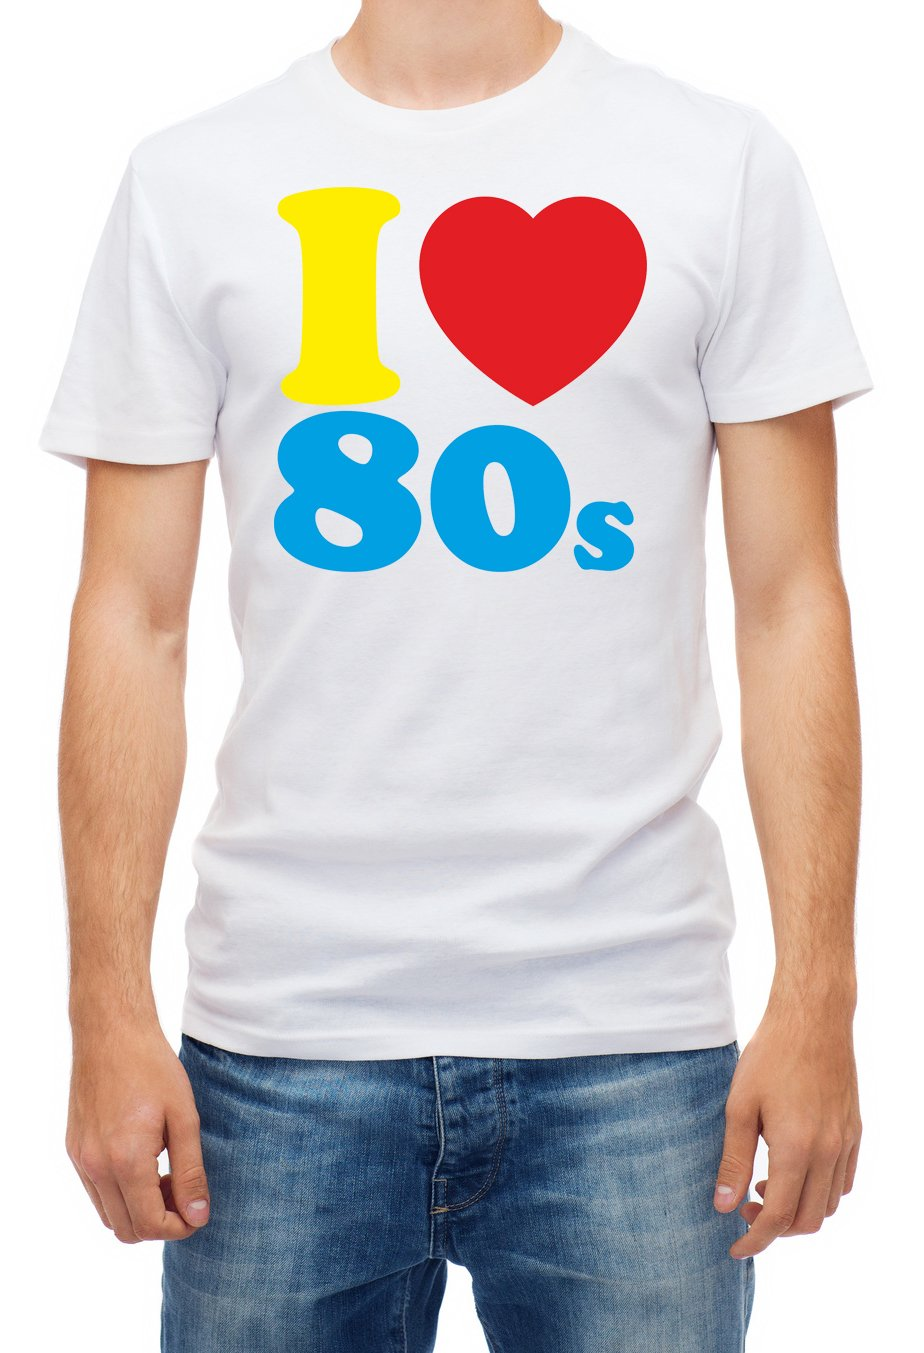 I Loveheart the 80s T-shirt for Men, S to XXL